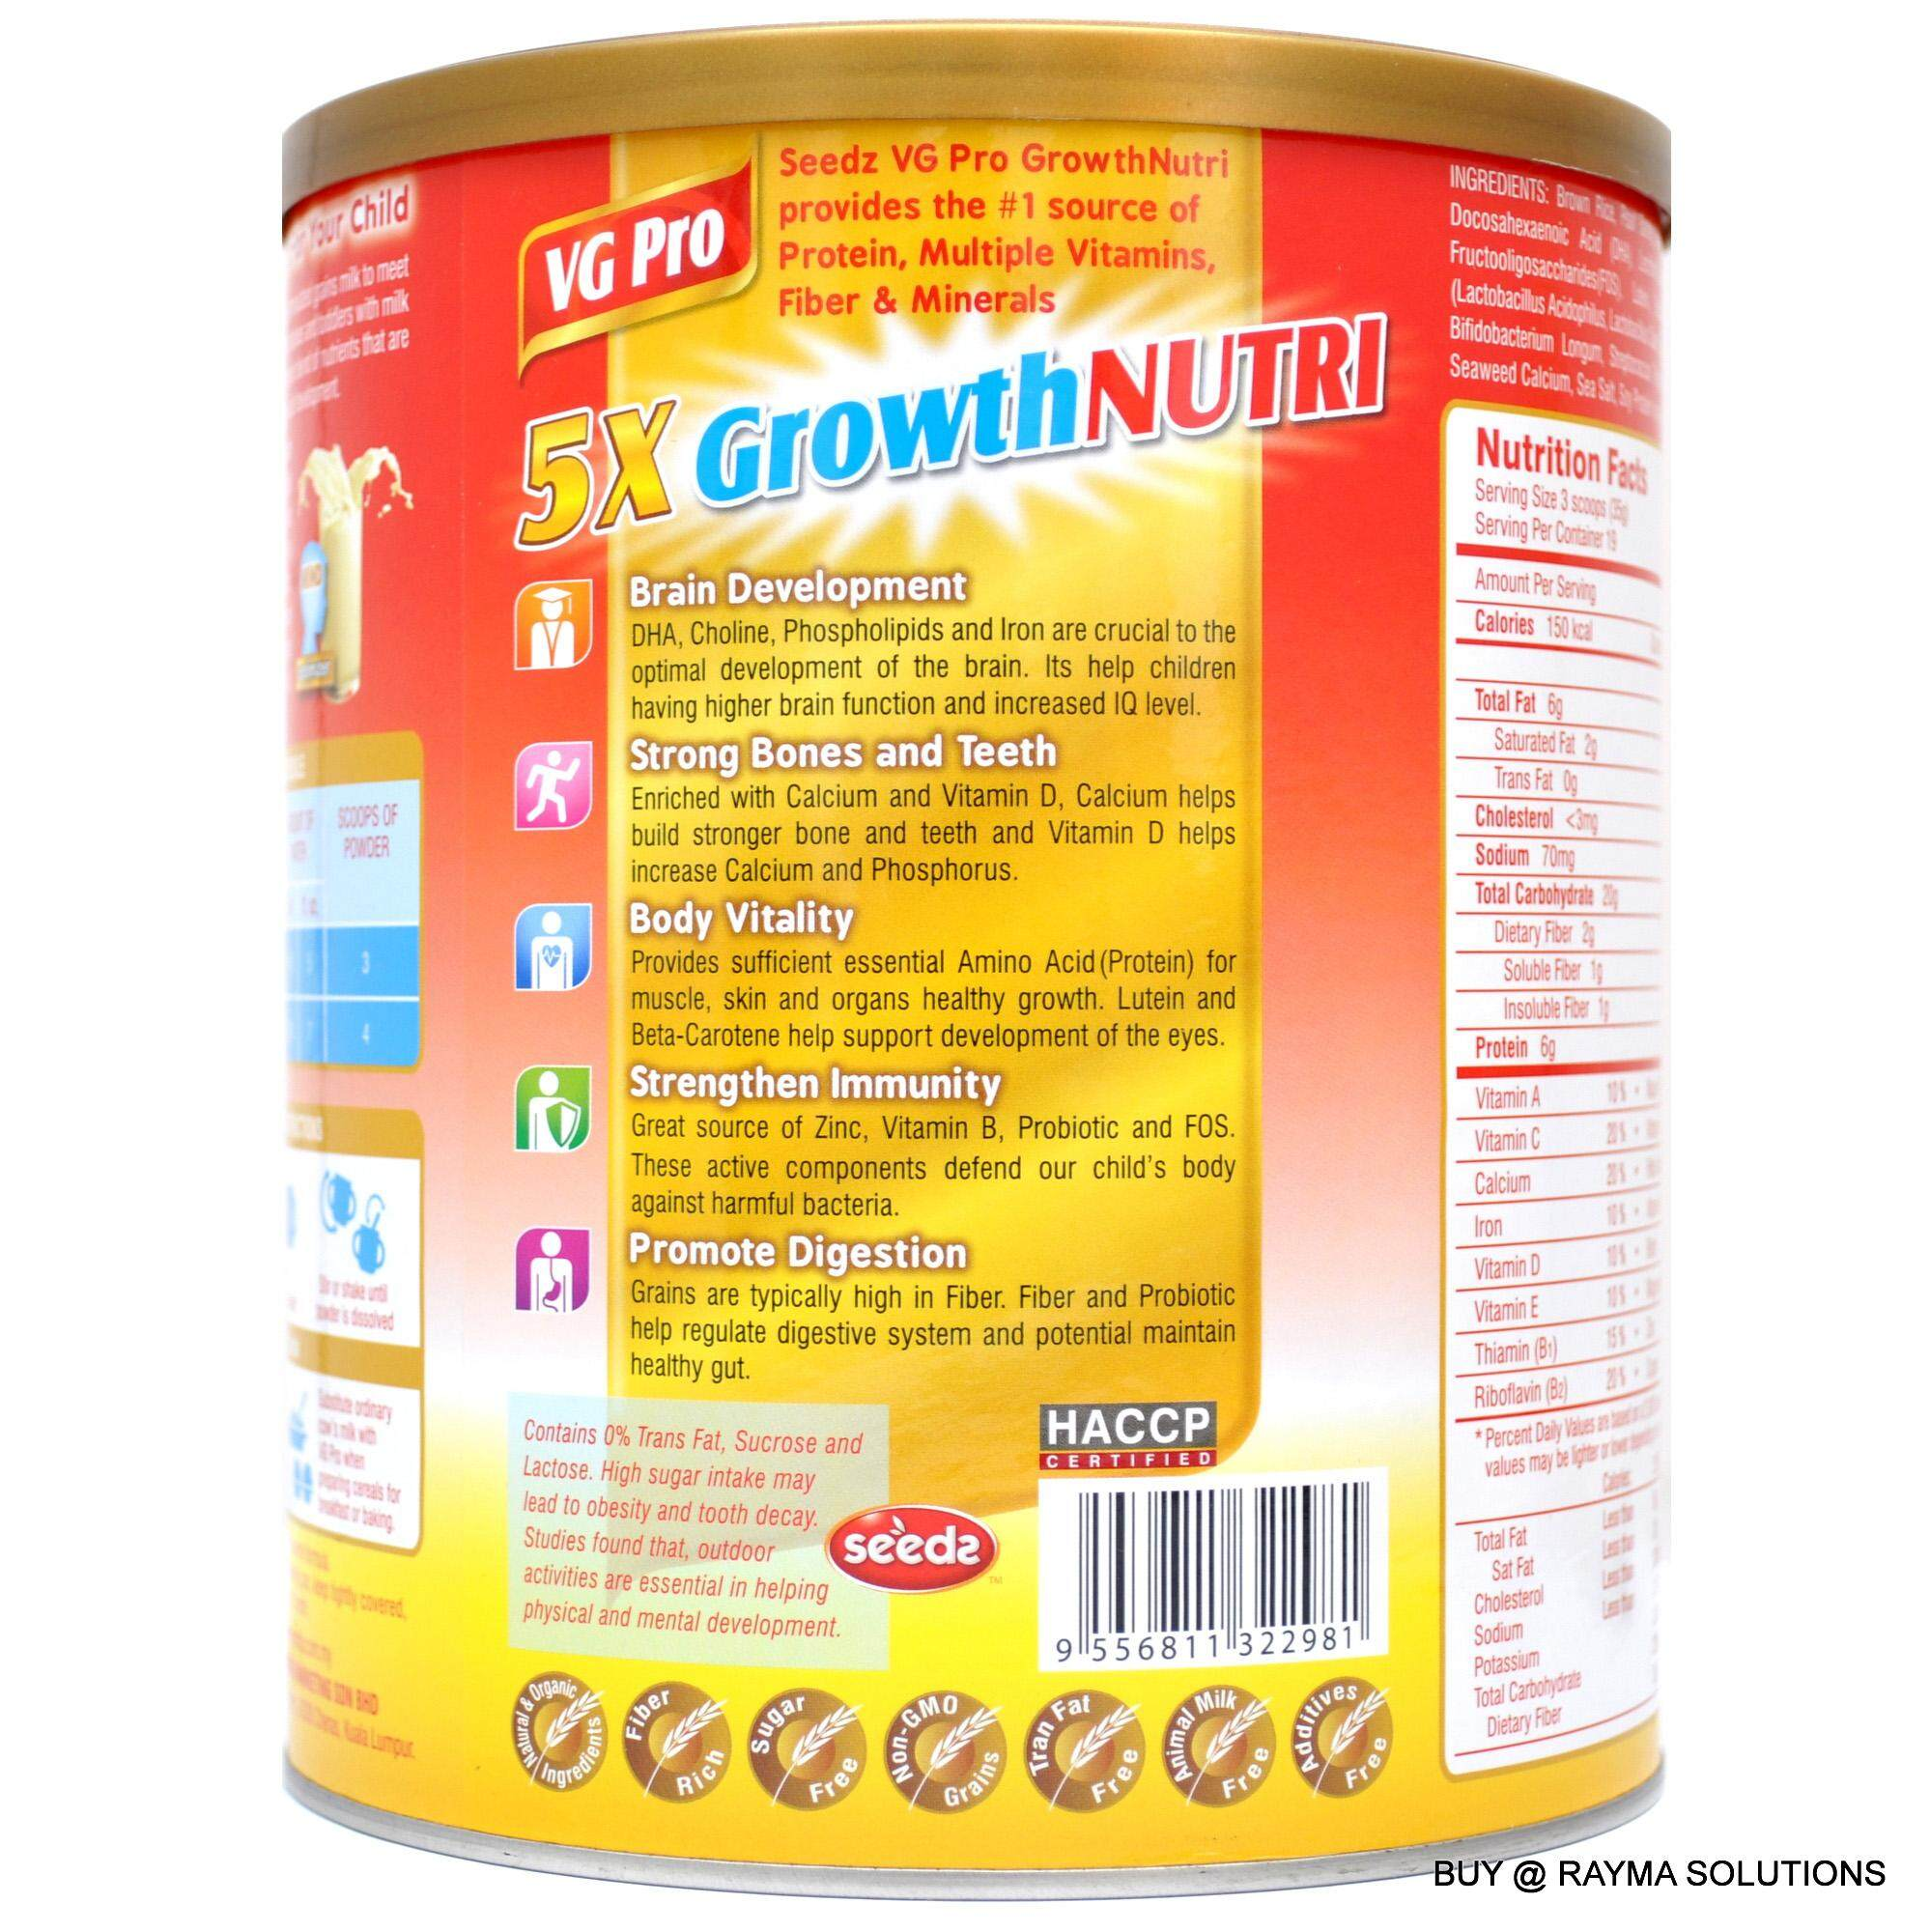 SEEDZ VG Pro 5X Formulated Grains Milk Growth Nutri, for 1-6 Years Old, (650g)